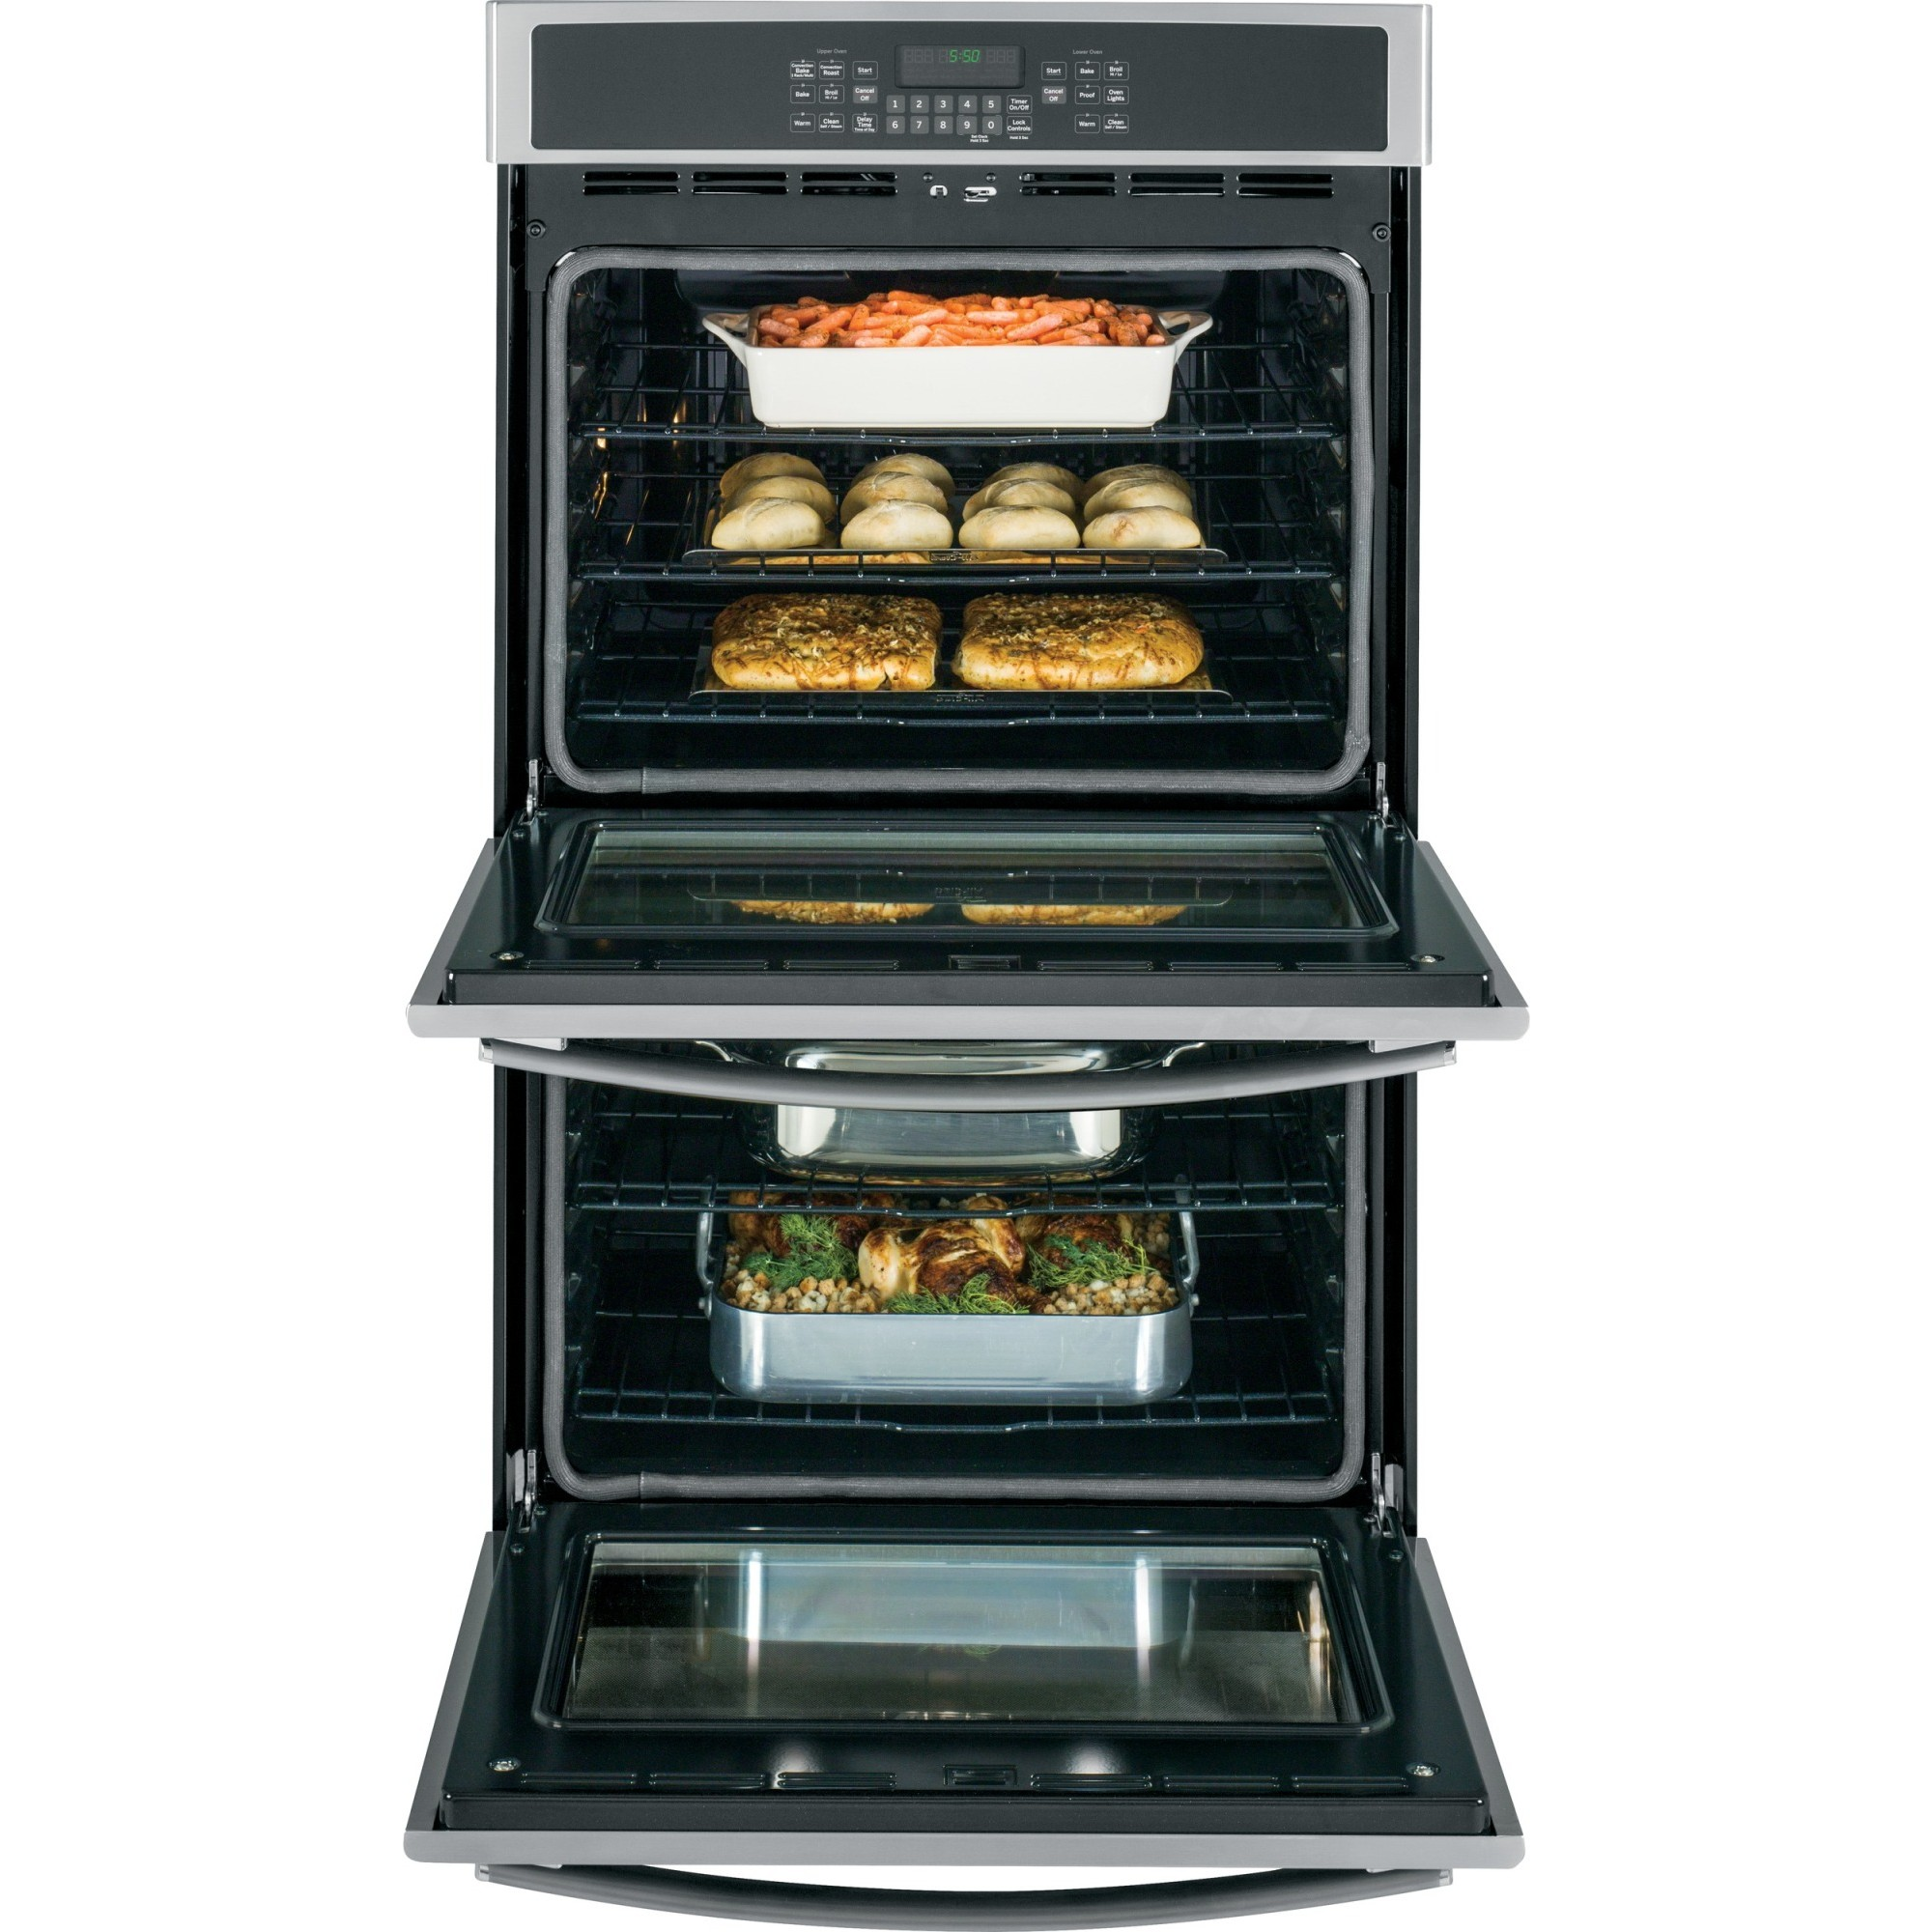 Jt5500sfss Ge 30 Quot Built In Double Wall Oven With Convection